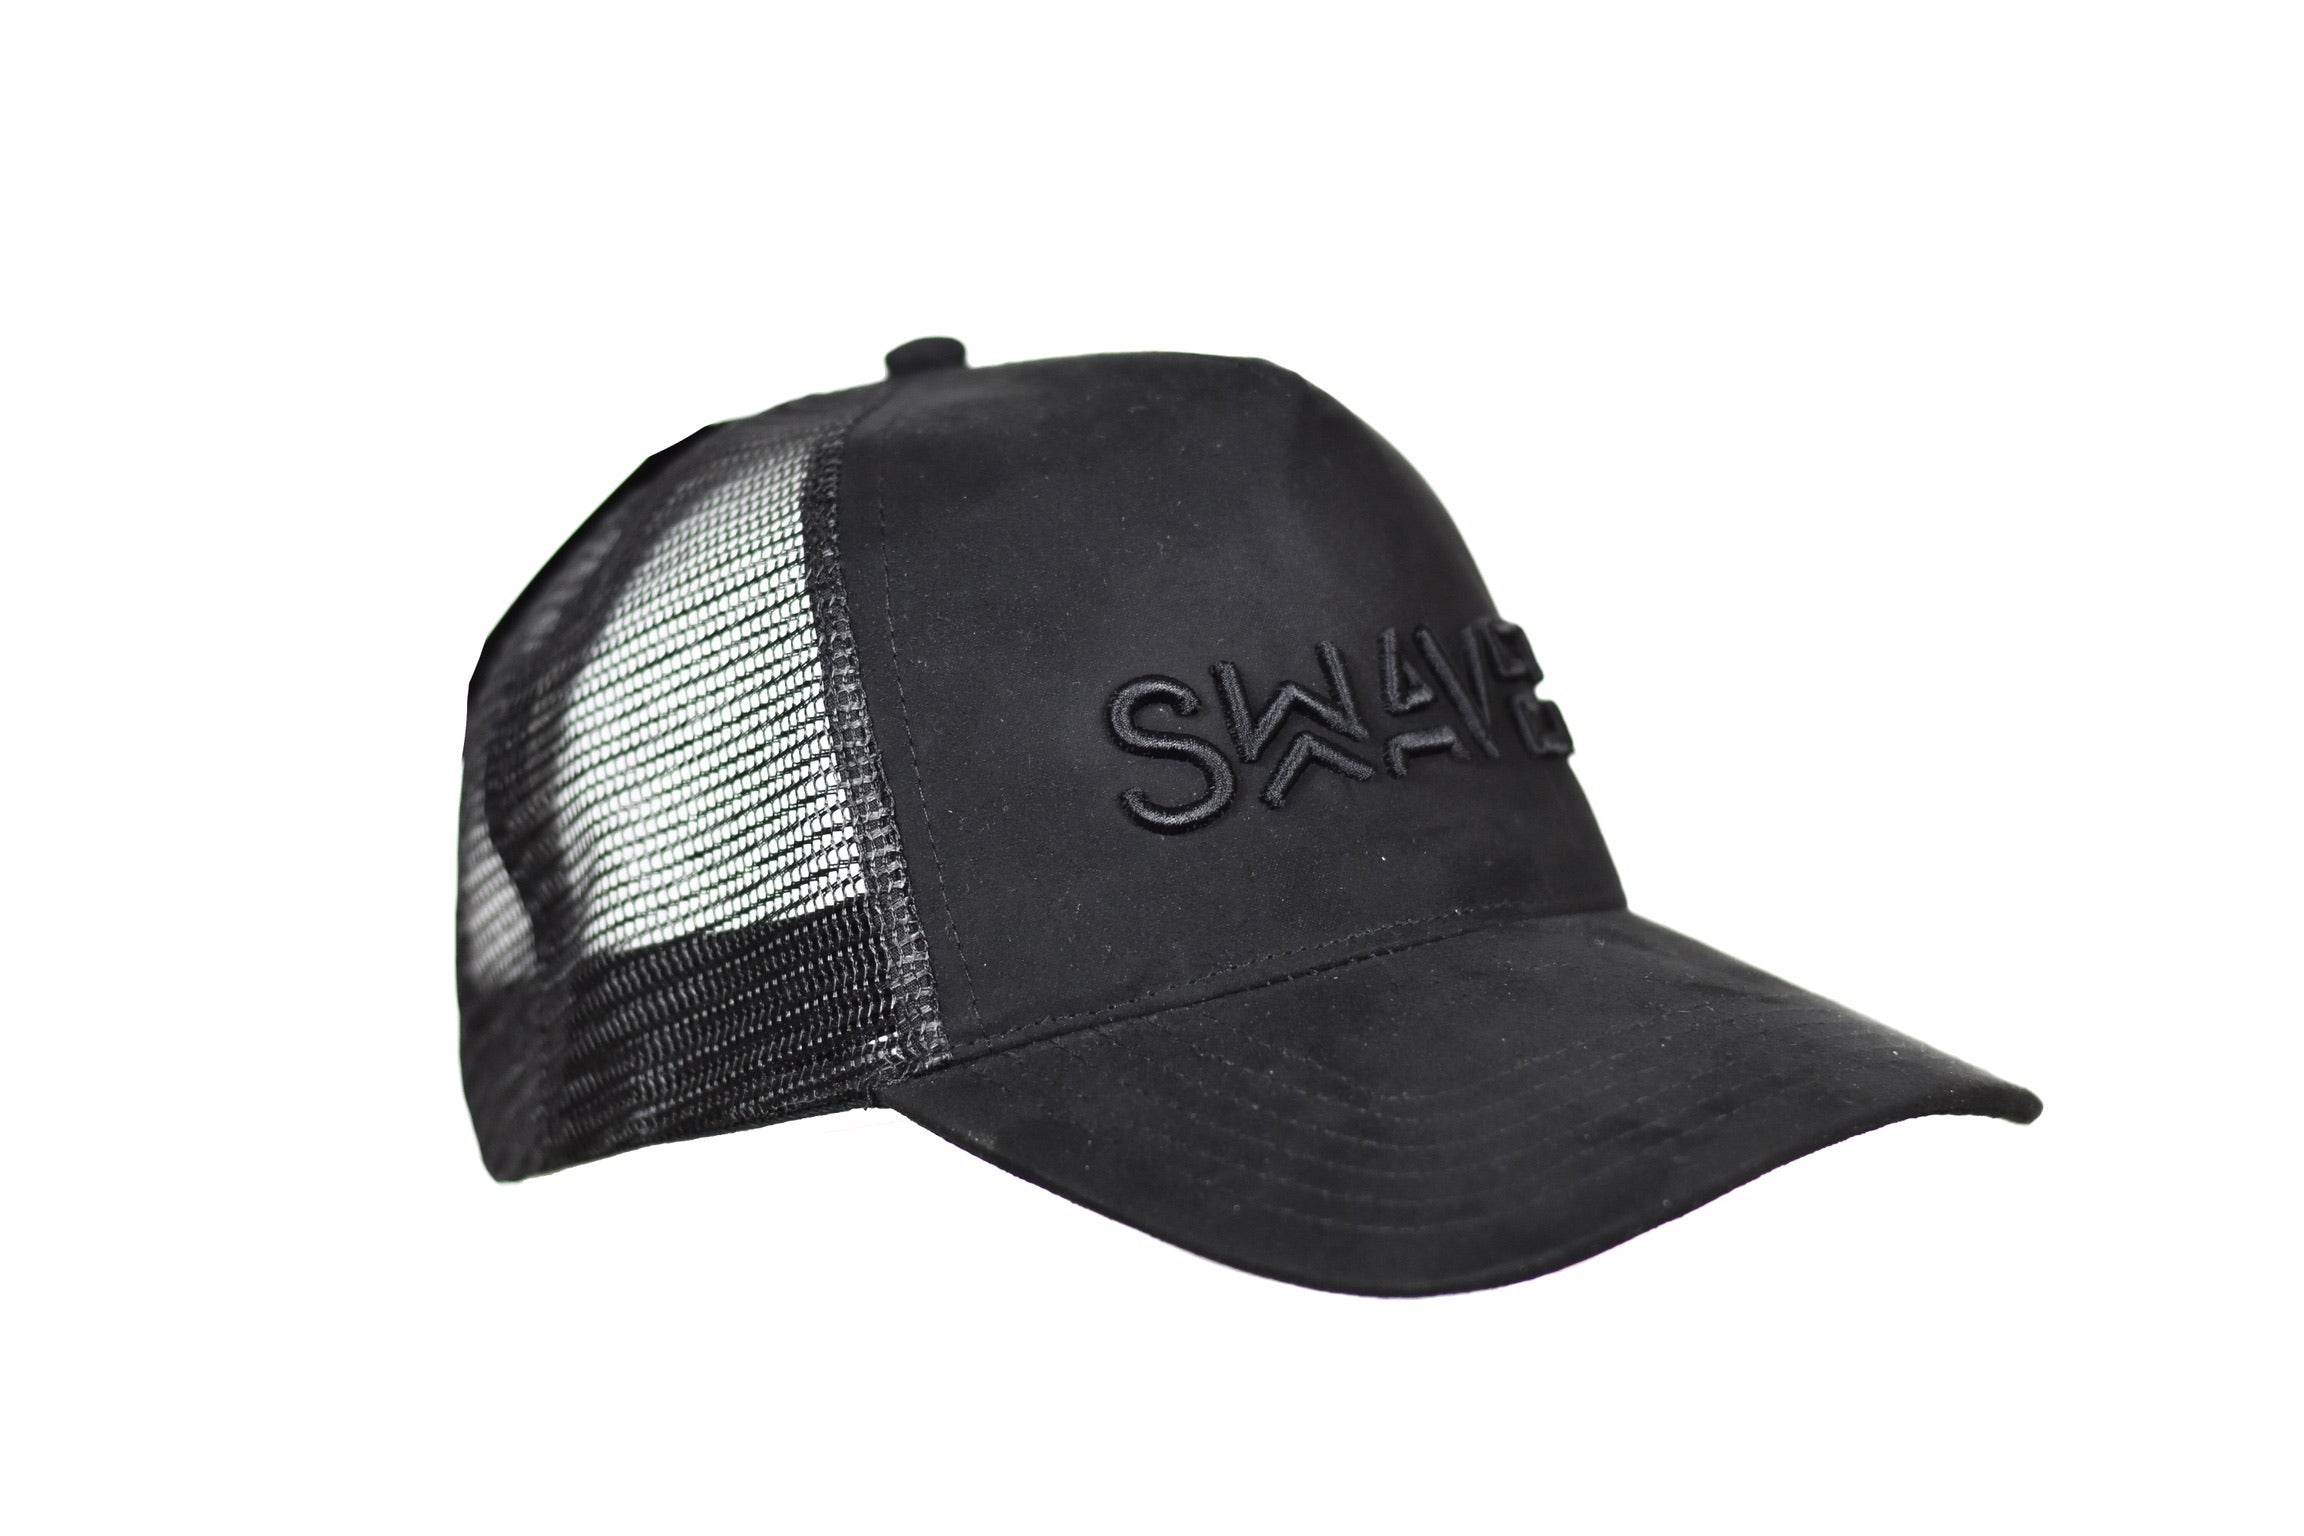 Swaver Black Suede Trucker - Swaver Accessories